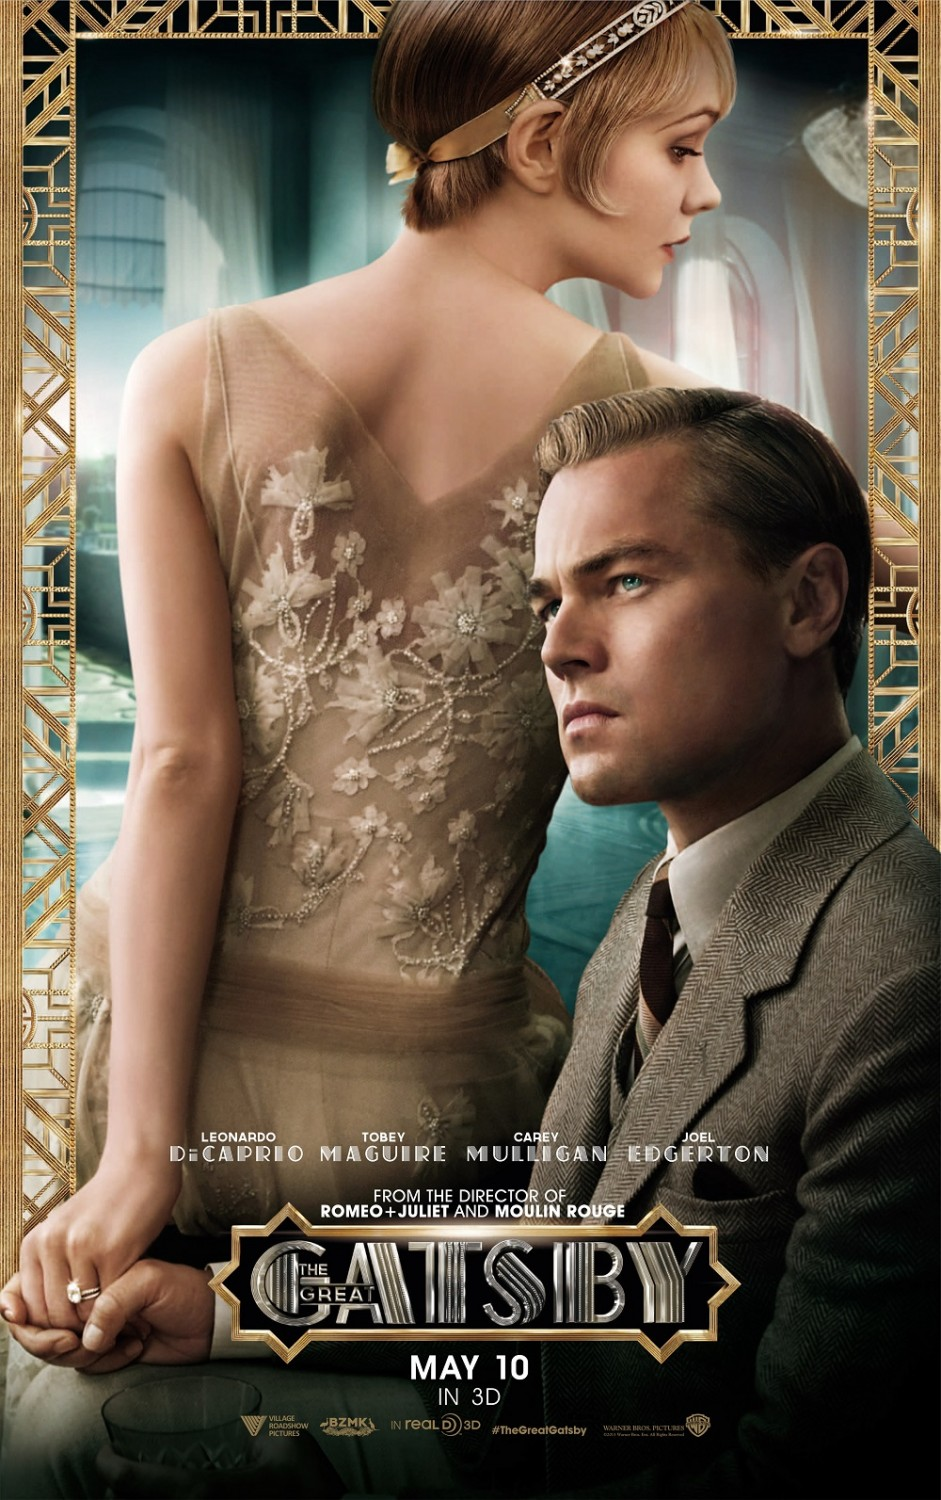 The great gatsby gets new uk trailer behind the scene stills and